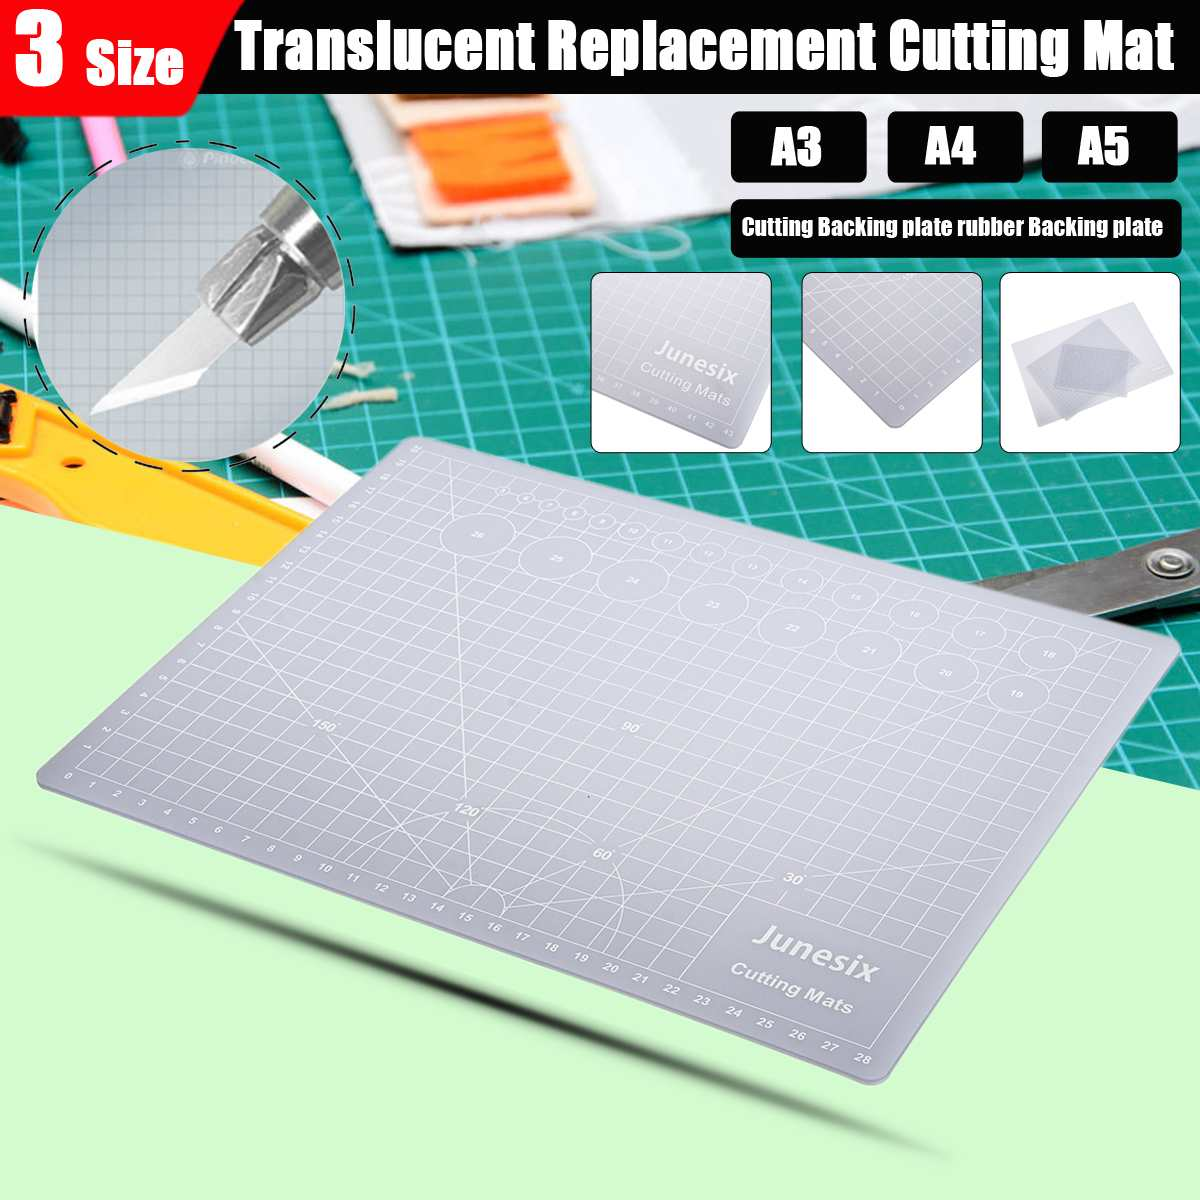 NEW A3, A4, A5 Transparent Replacement Cutting Mat Adhesive Mat Composite PVC With Measuring Grid For Silhouette Cameo Plotter